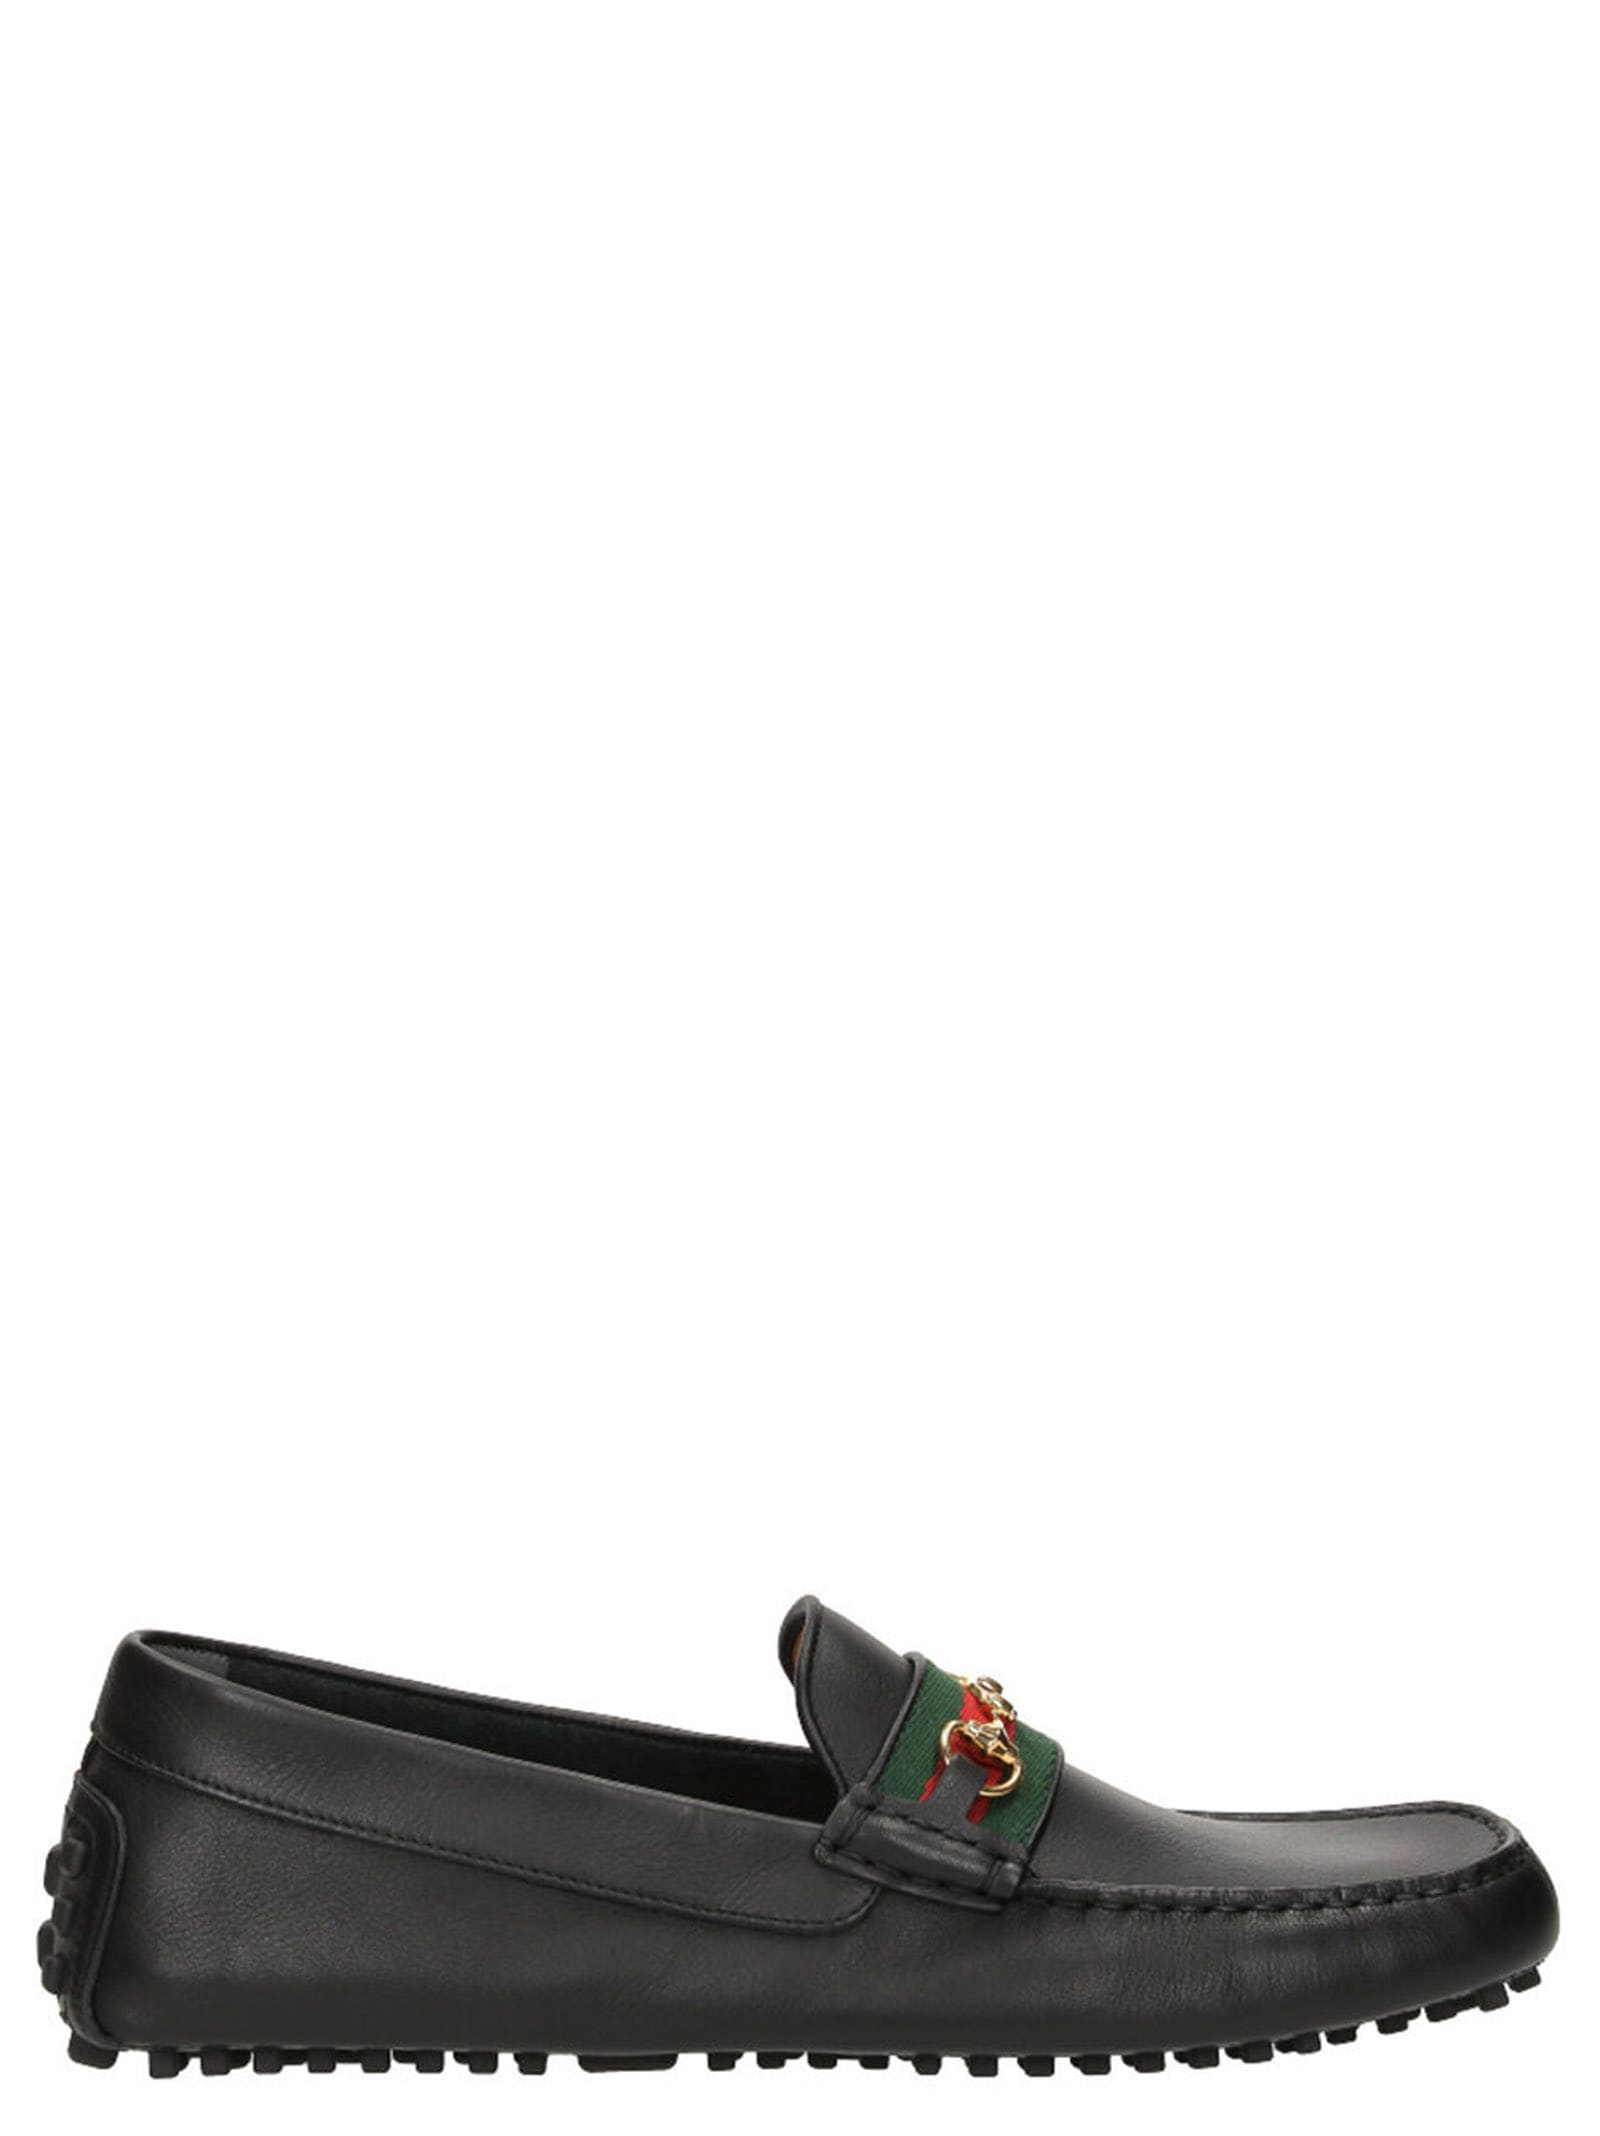 GUCCI AYRTON SHOES